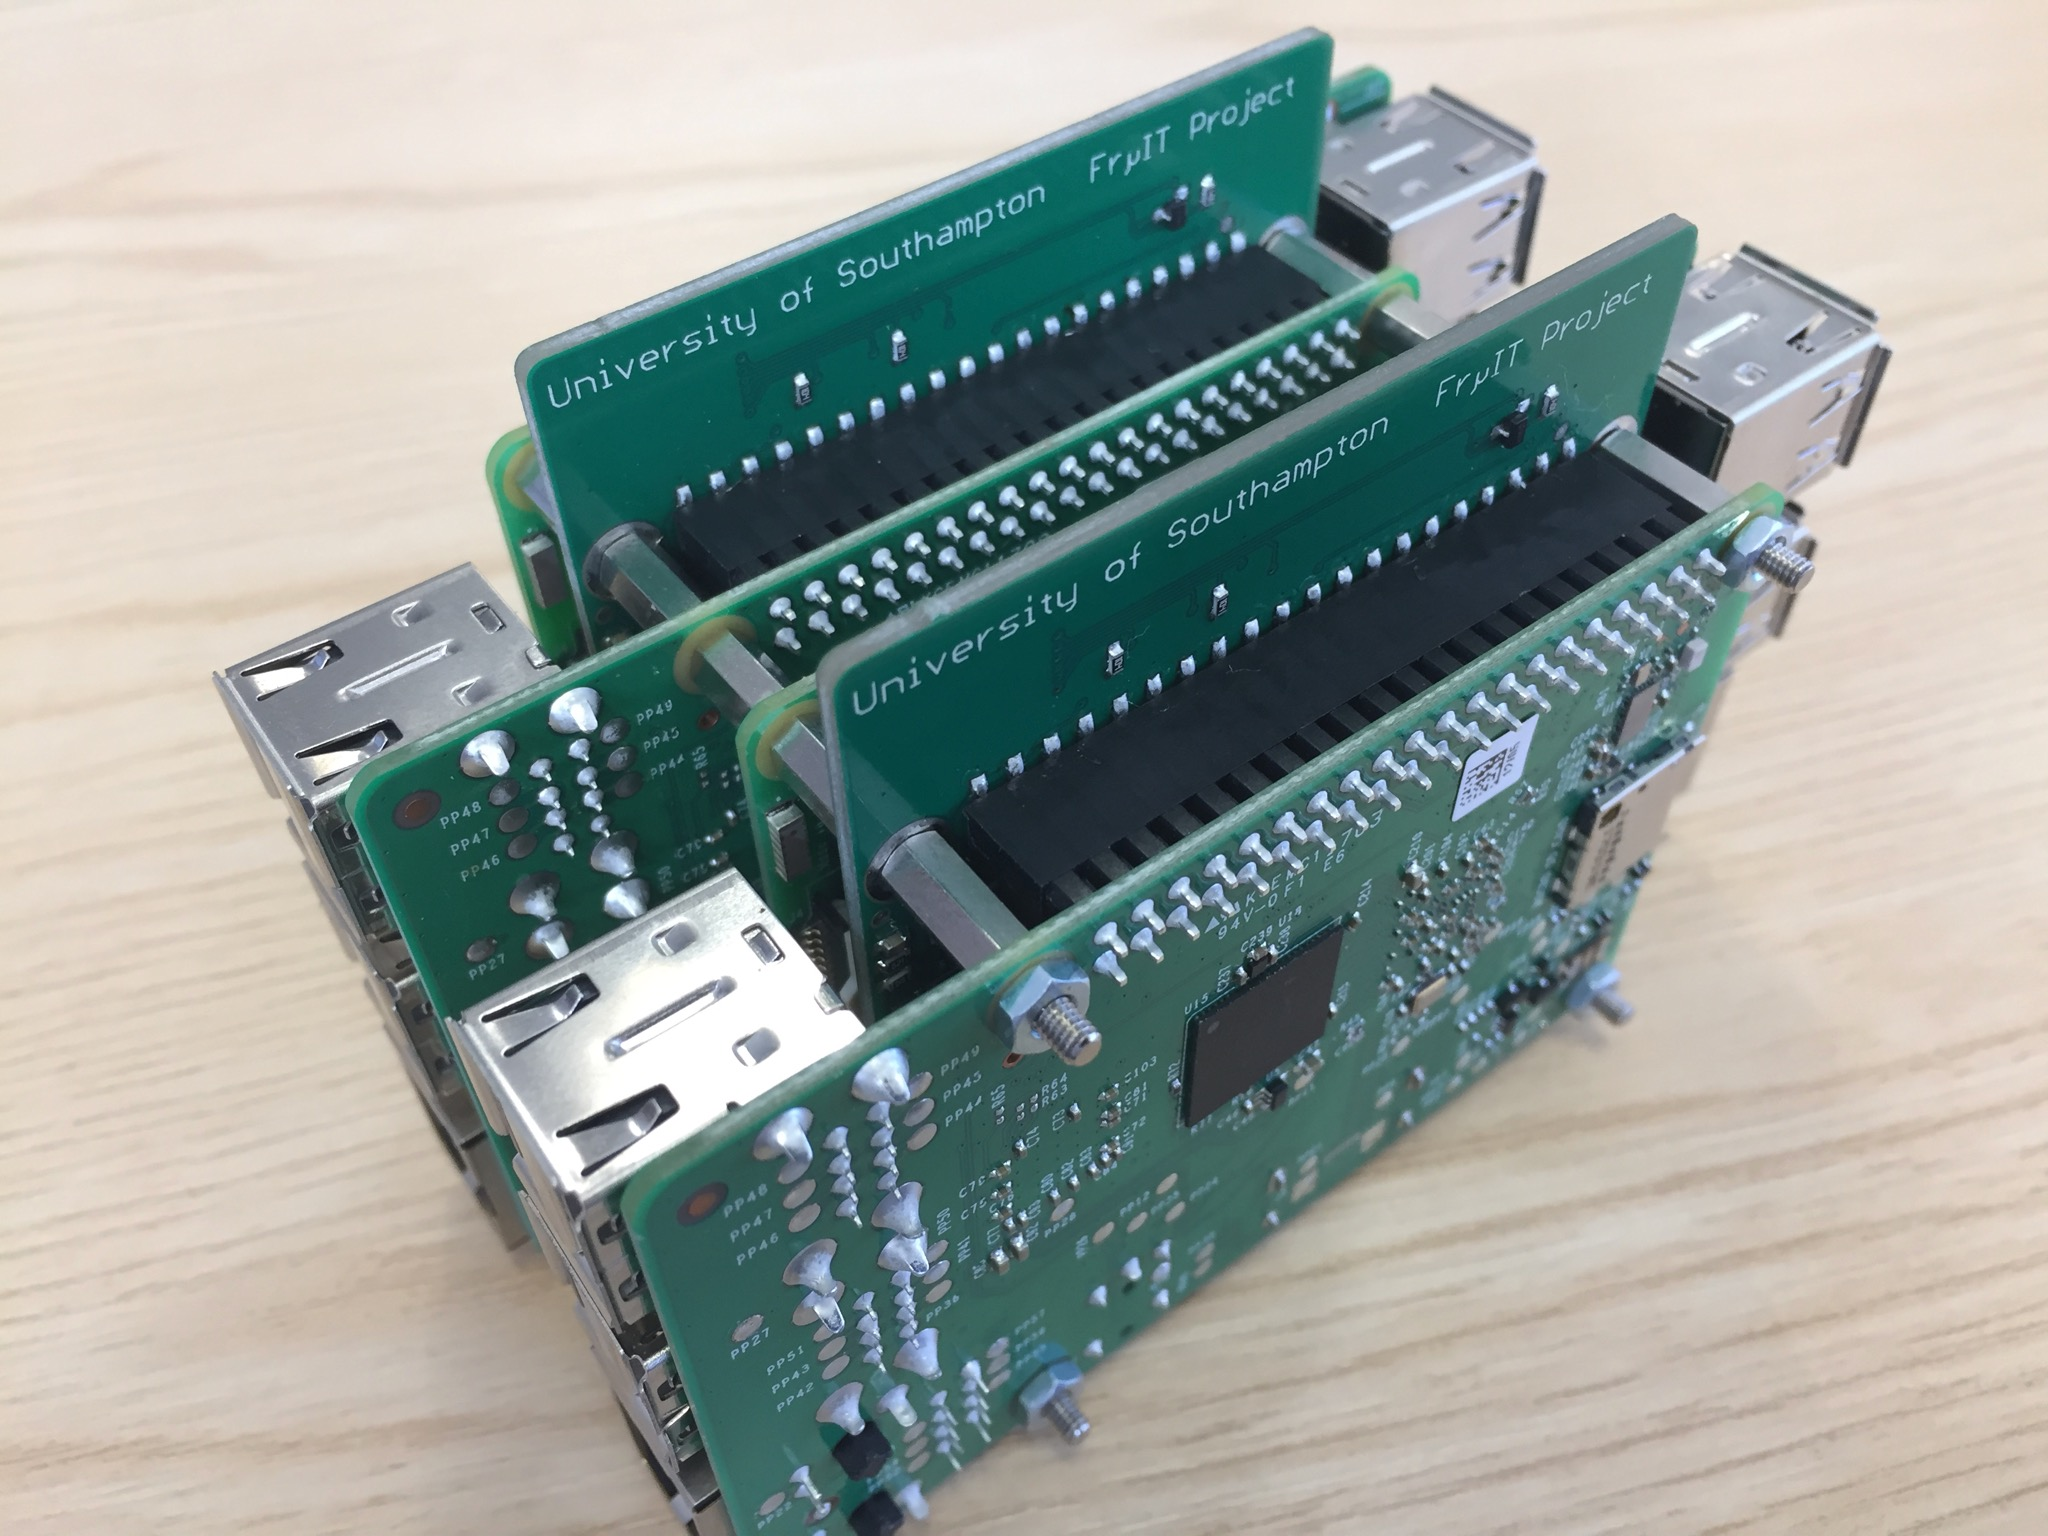 PiStack - Raspberry Pi cluster power supply board prototype